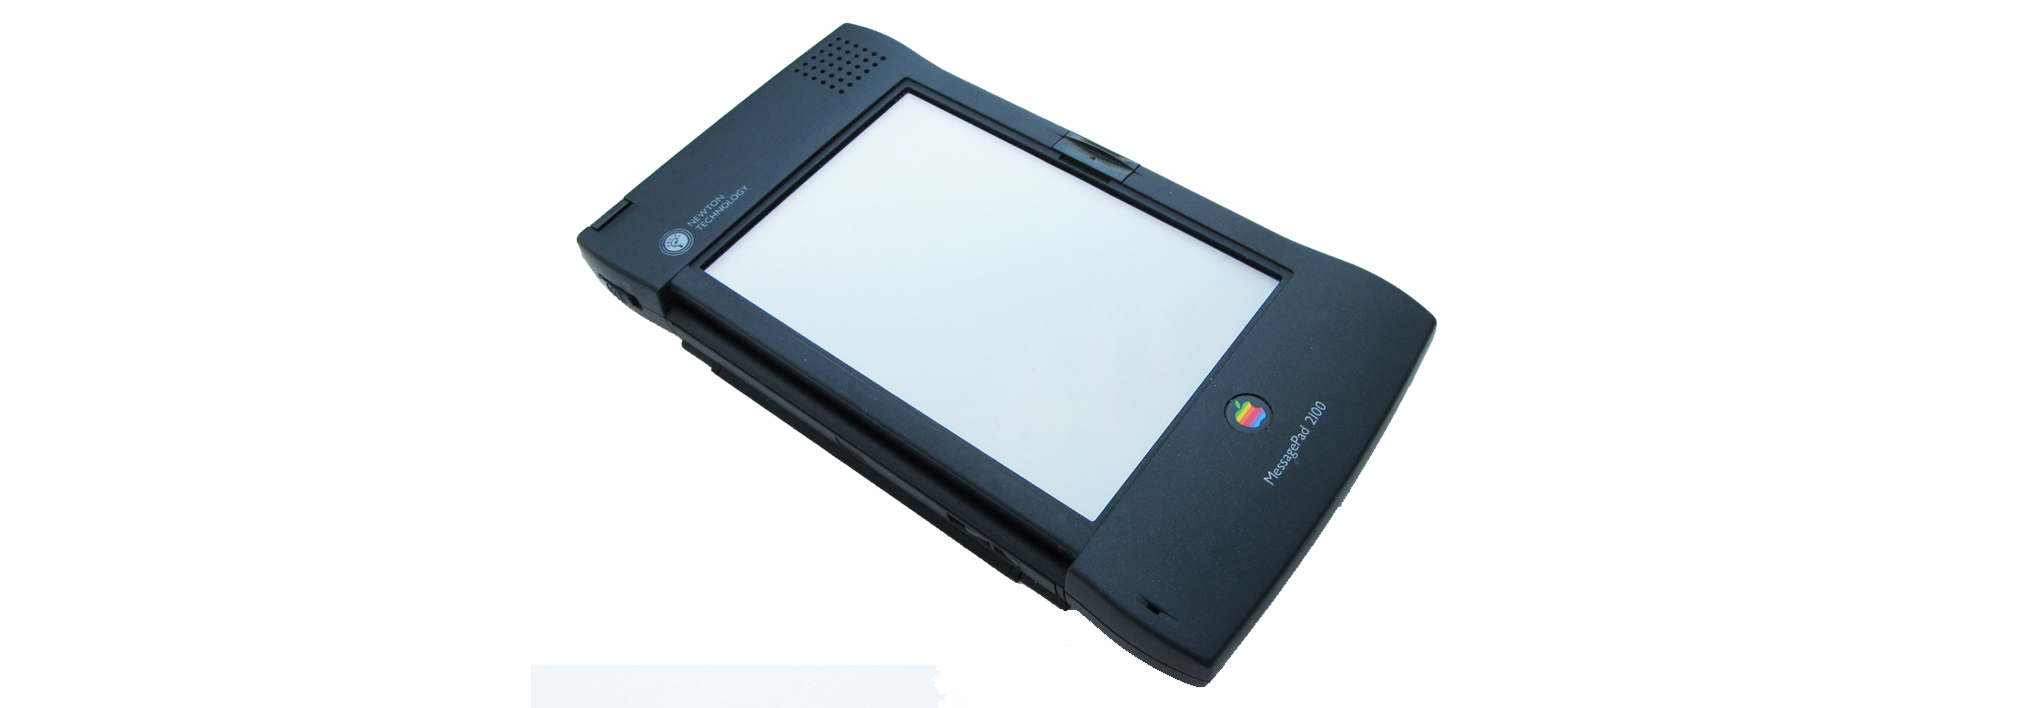 The Apple Newton on white background